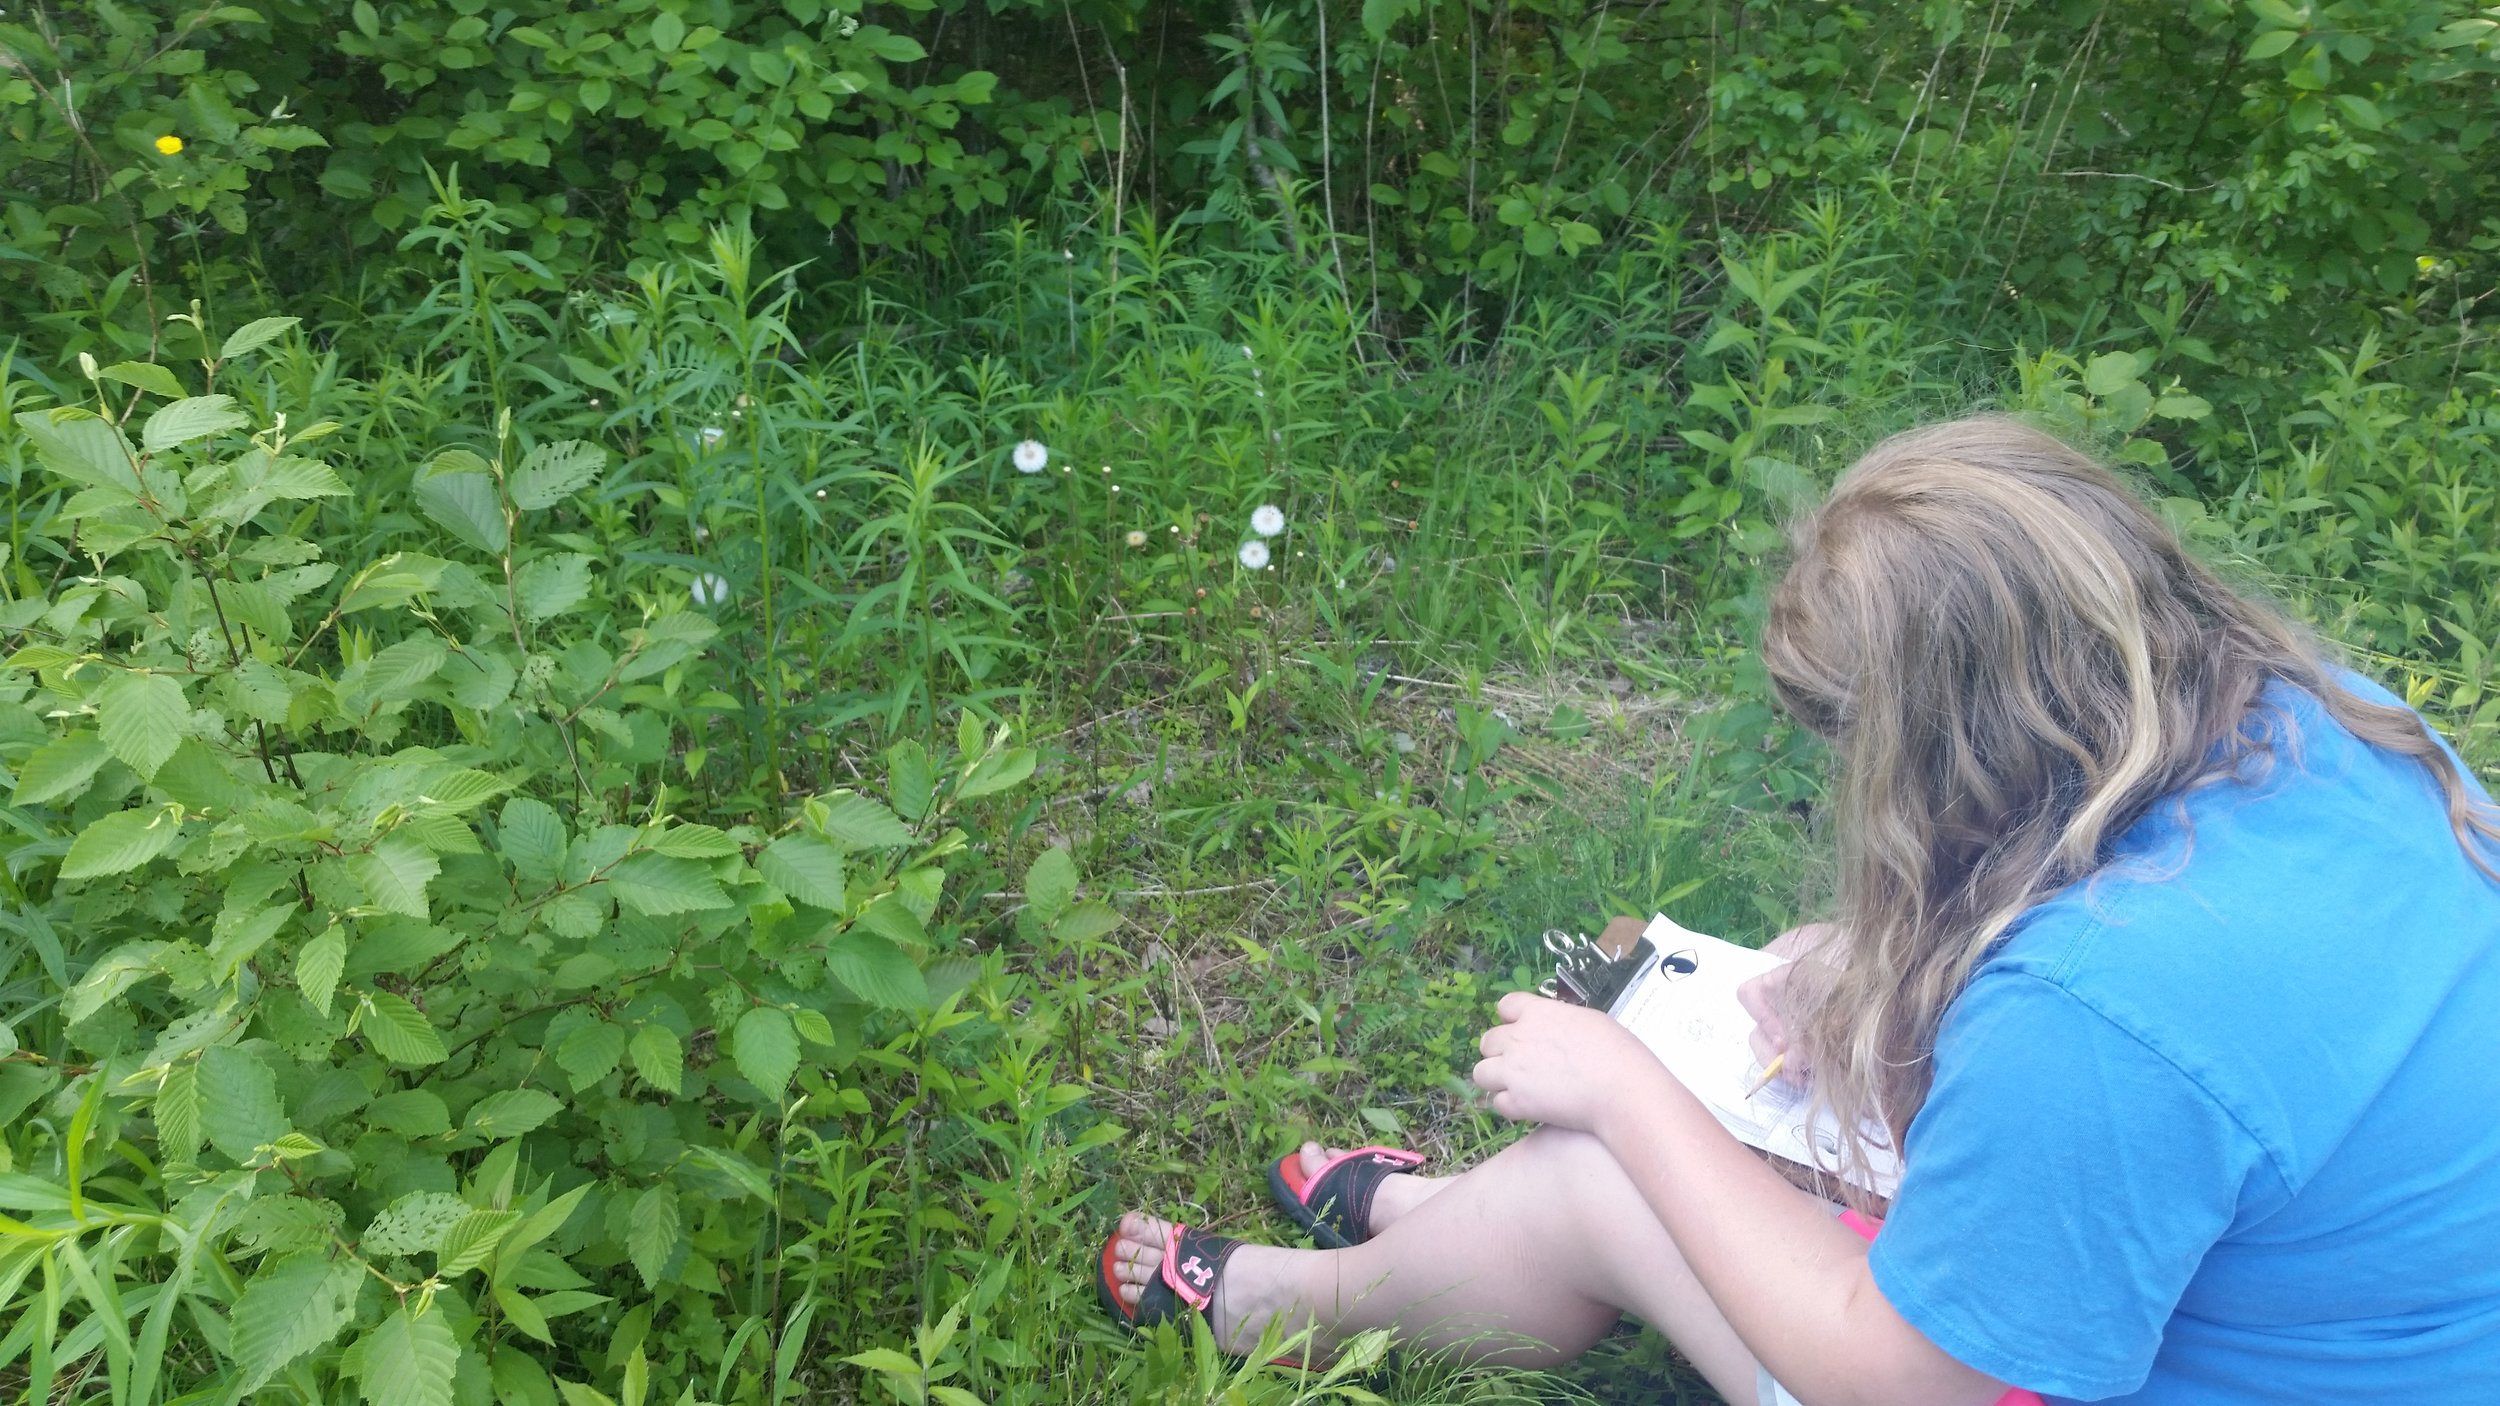 Sketching observations about changes in their schoolyard since March